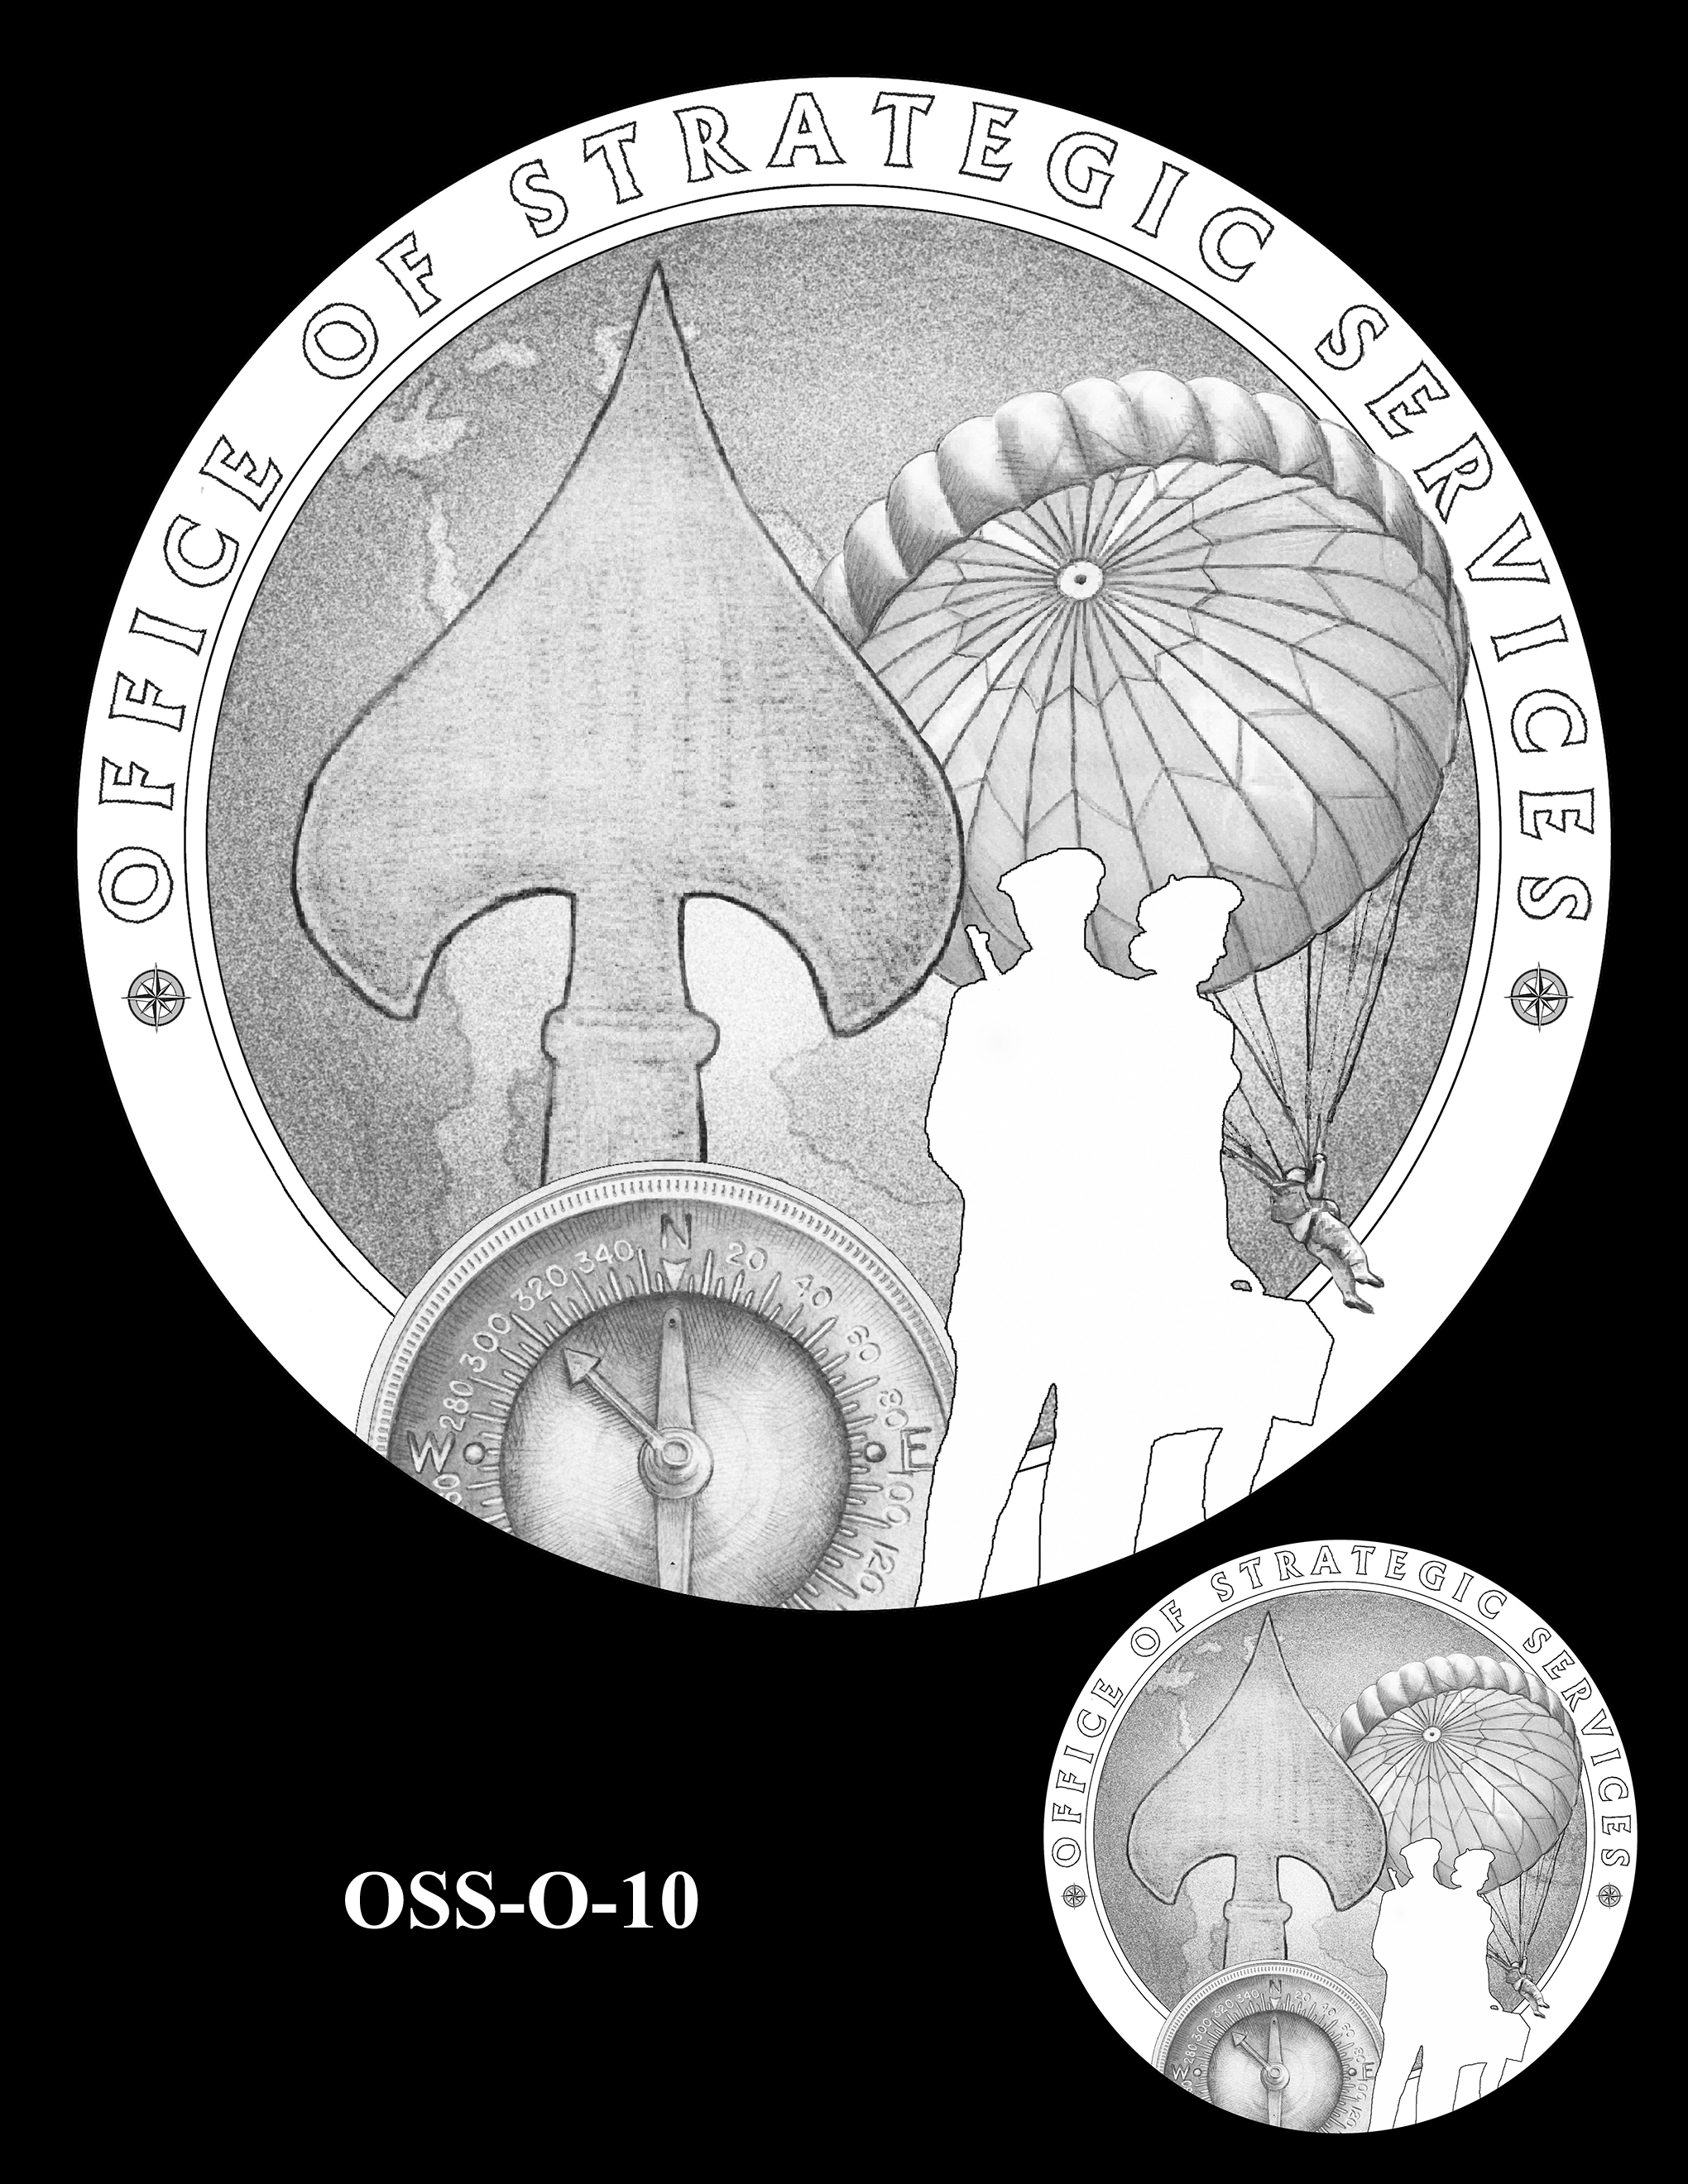 OSS-O-10 -- Office of Strategic Services Congressional Gold Medal